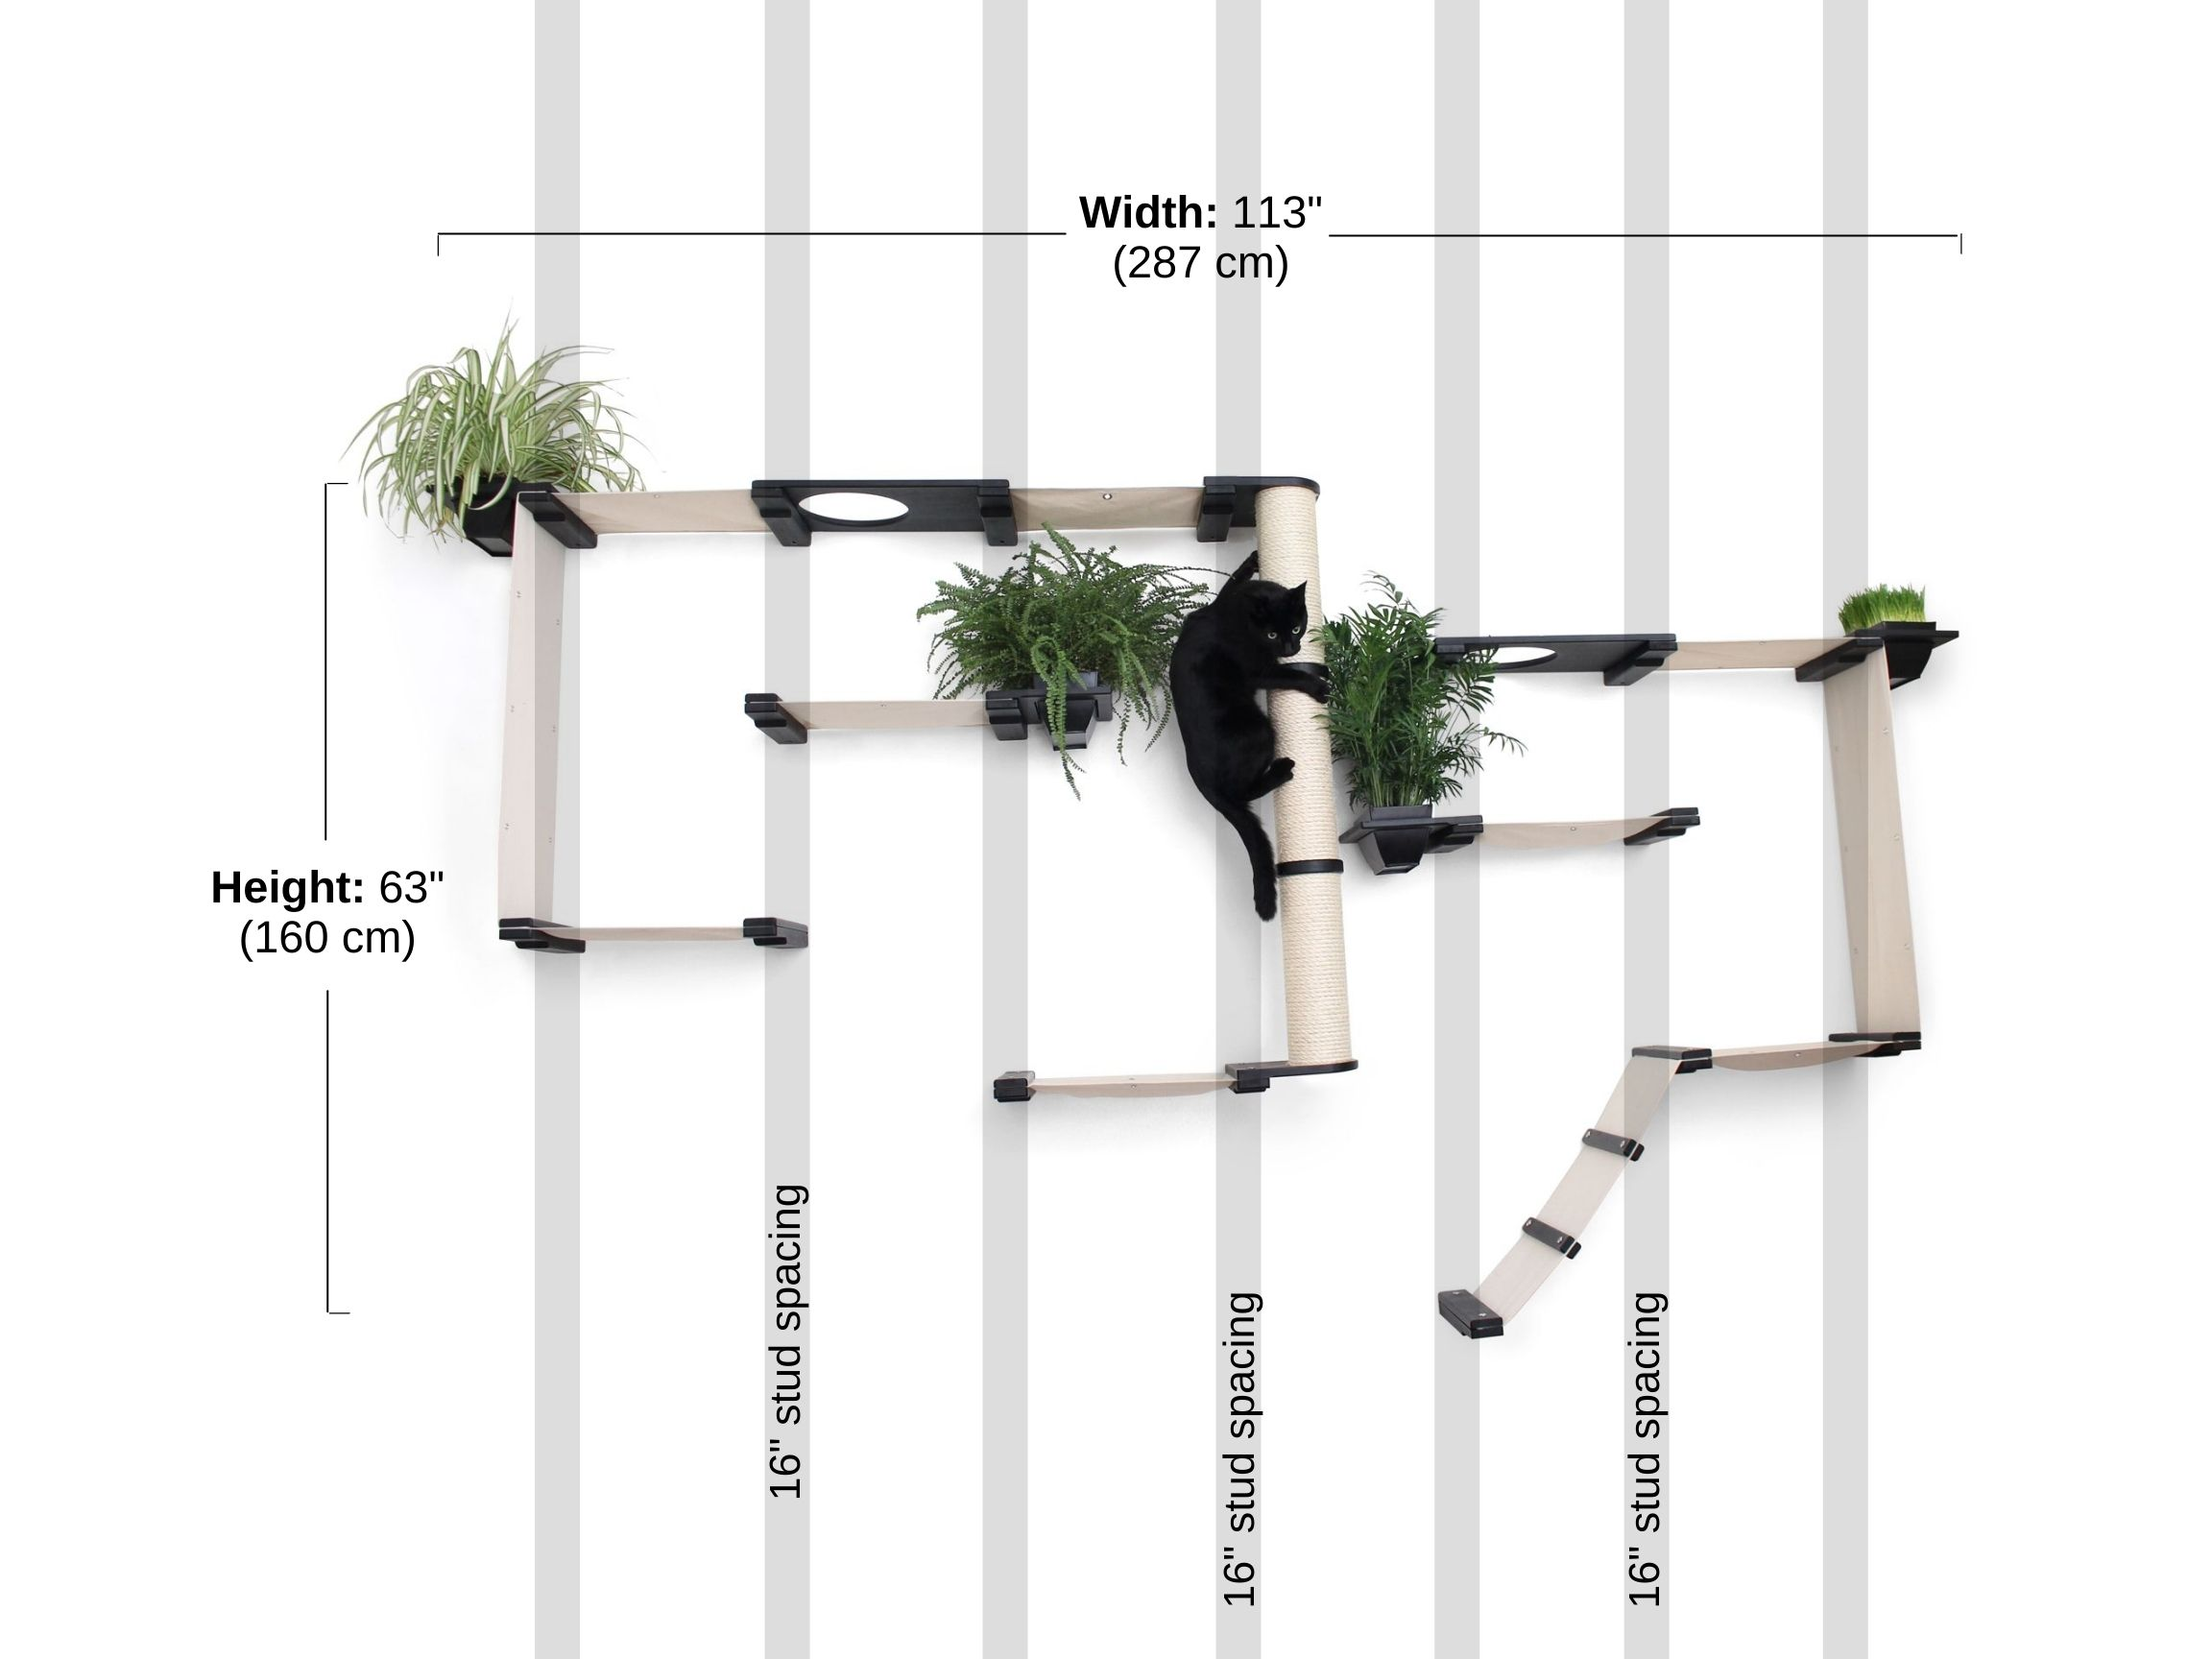 Stud spacing and dimensions of gardens complex